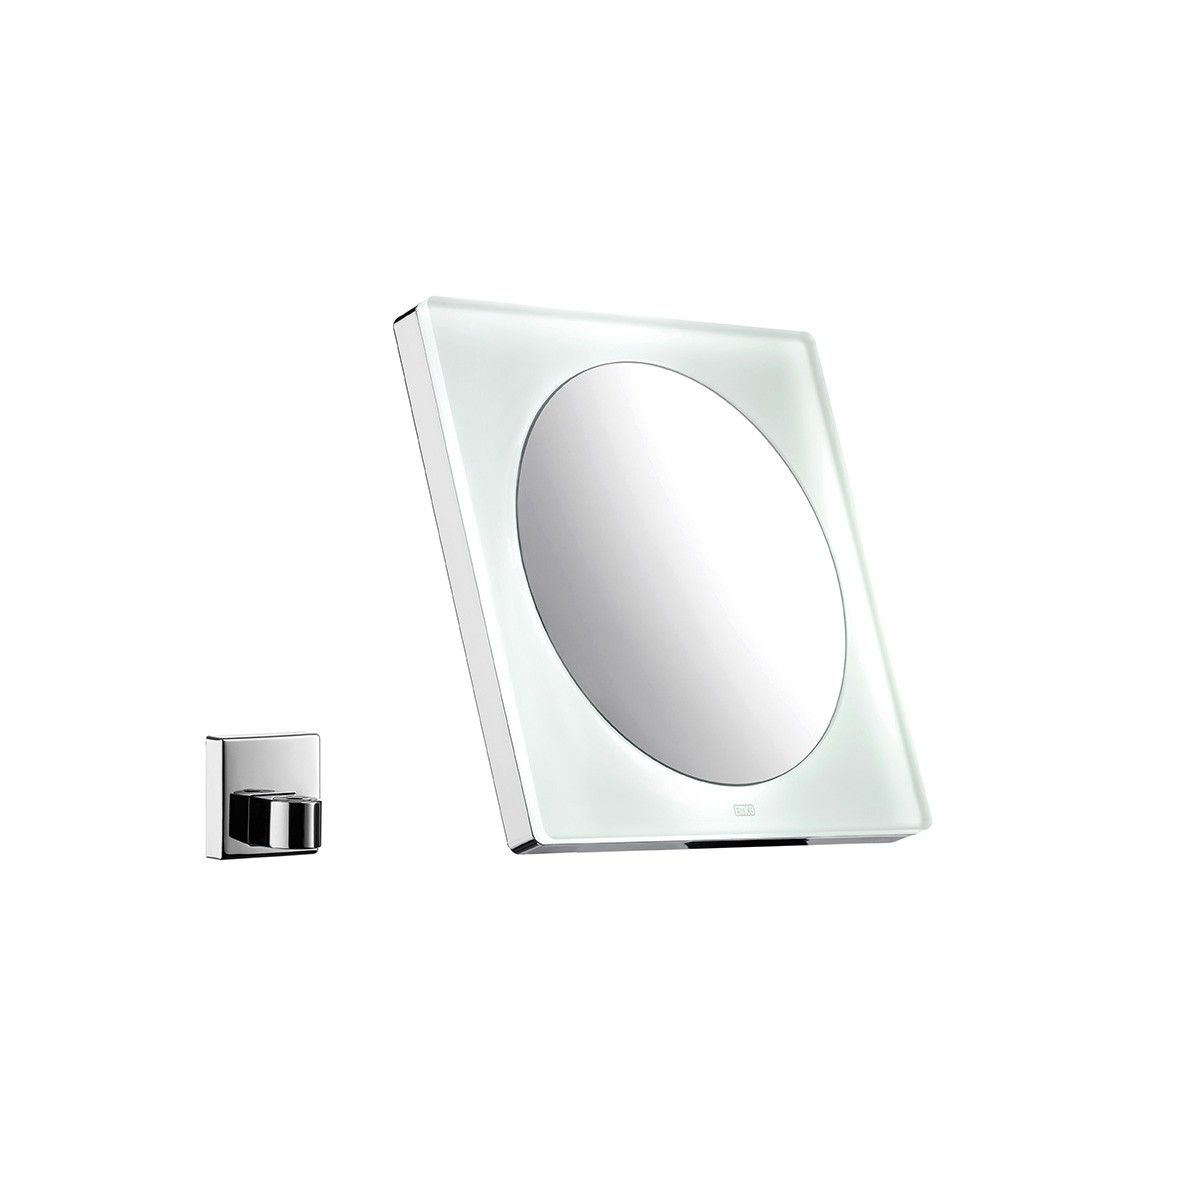 Spiegel 1096 001 12 Led Battery Operated Lighted Magnifying Mirror 5x Magnifying Mirror Battery Operated Lights Magnifier